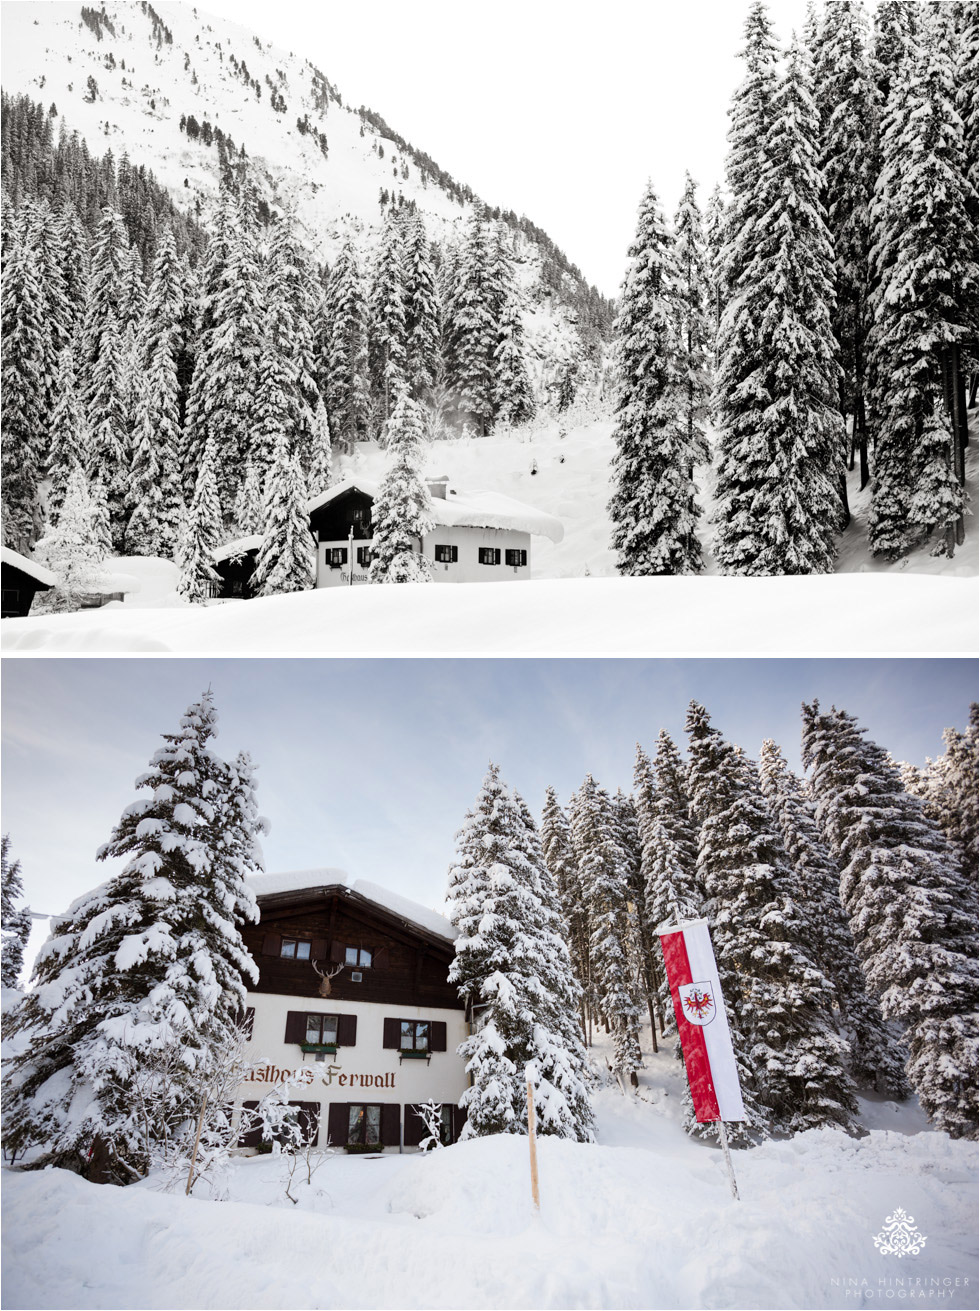 winter wonderland at the restaurant Ferwall near st. anton at the arlberg - Blog of Nina Hintringer Photography - Wedding Photography, Wedding Reportage and Destination Weddings